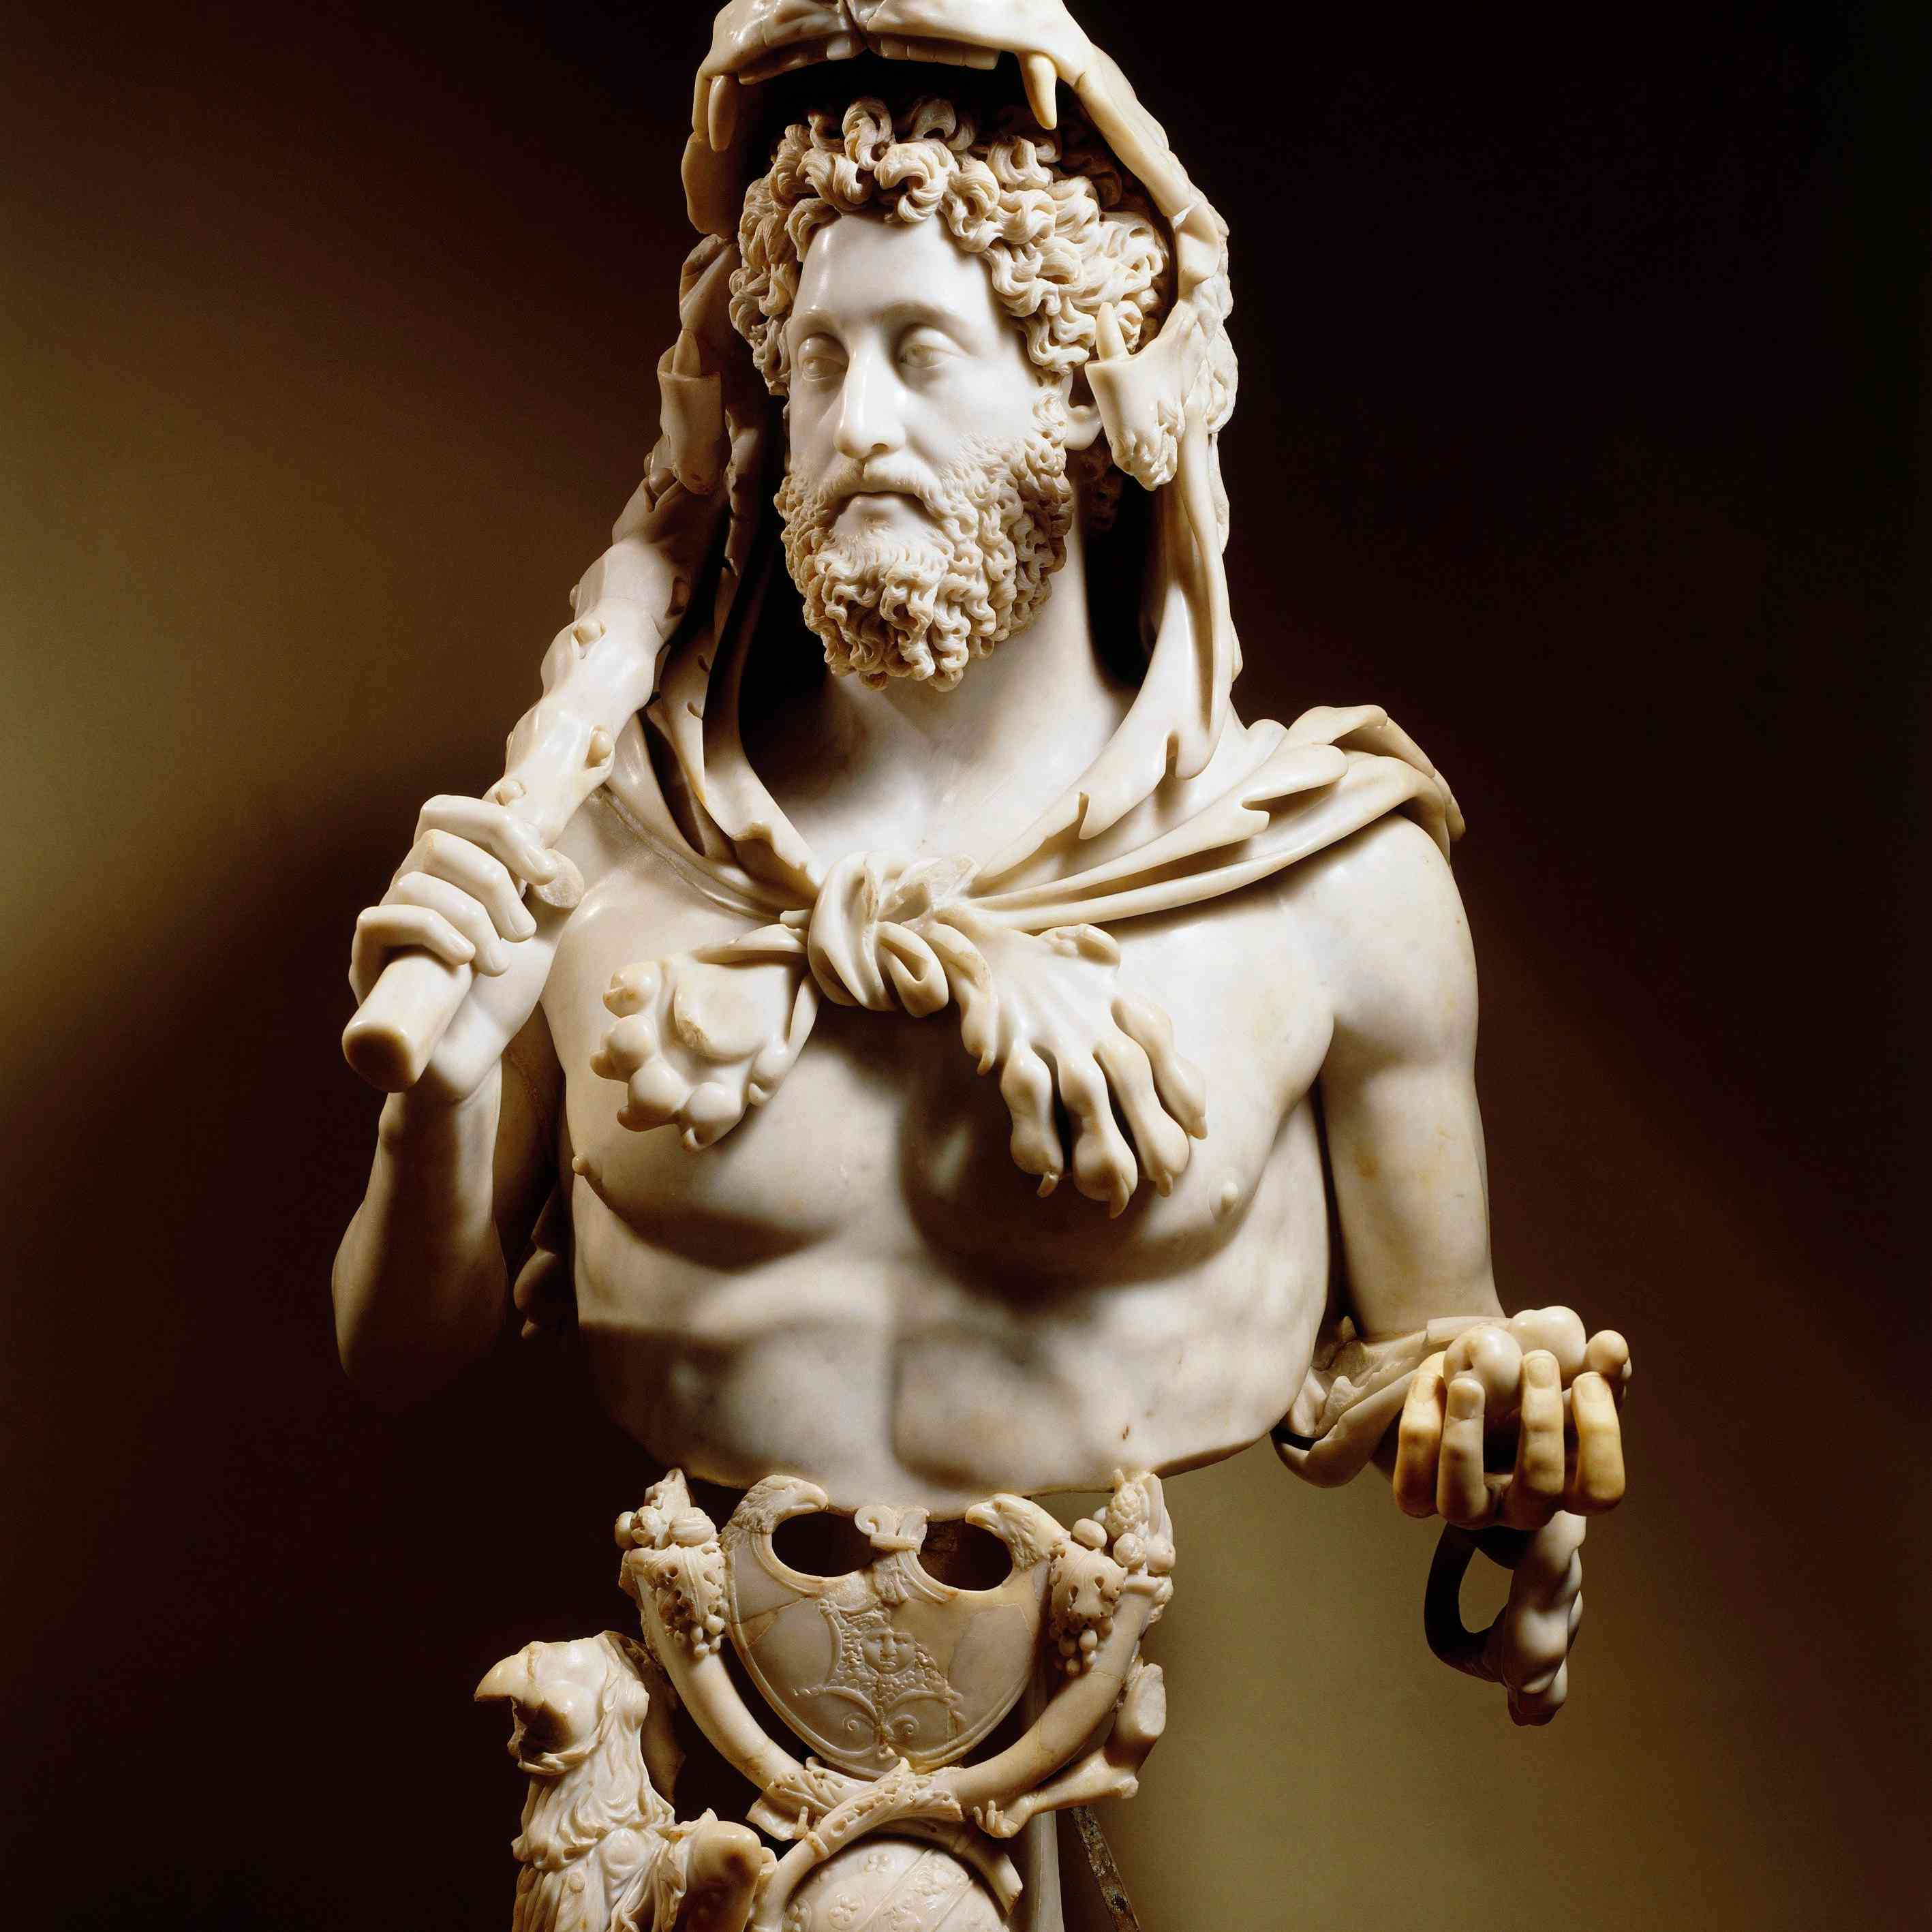 Emperor Commodus (160–192) dressed as Hercules. Marble statue